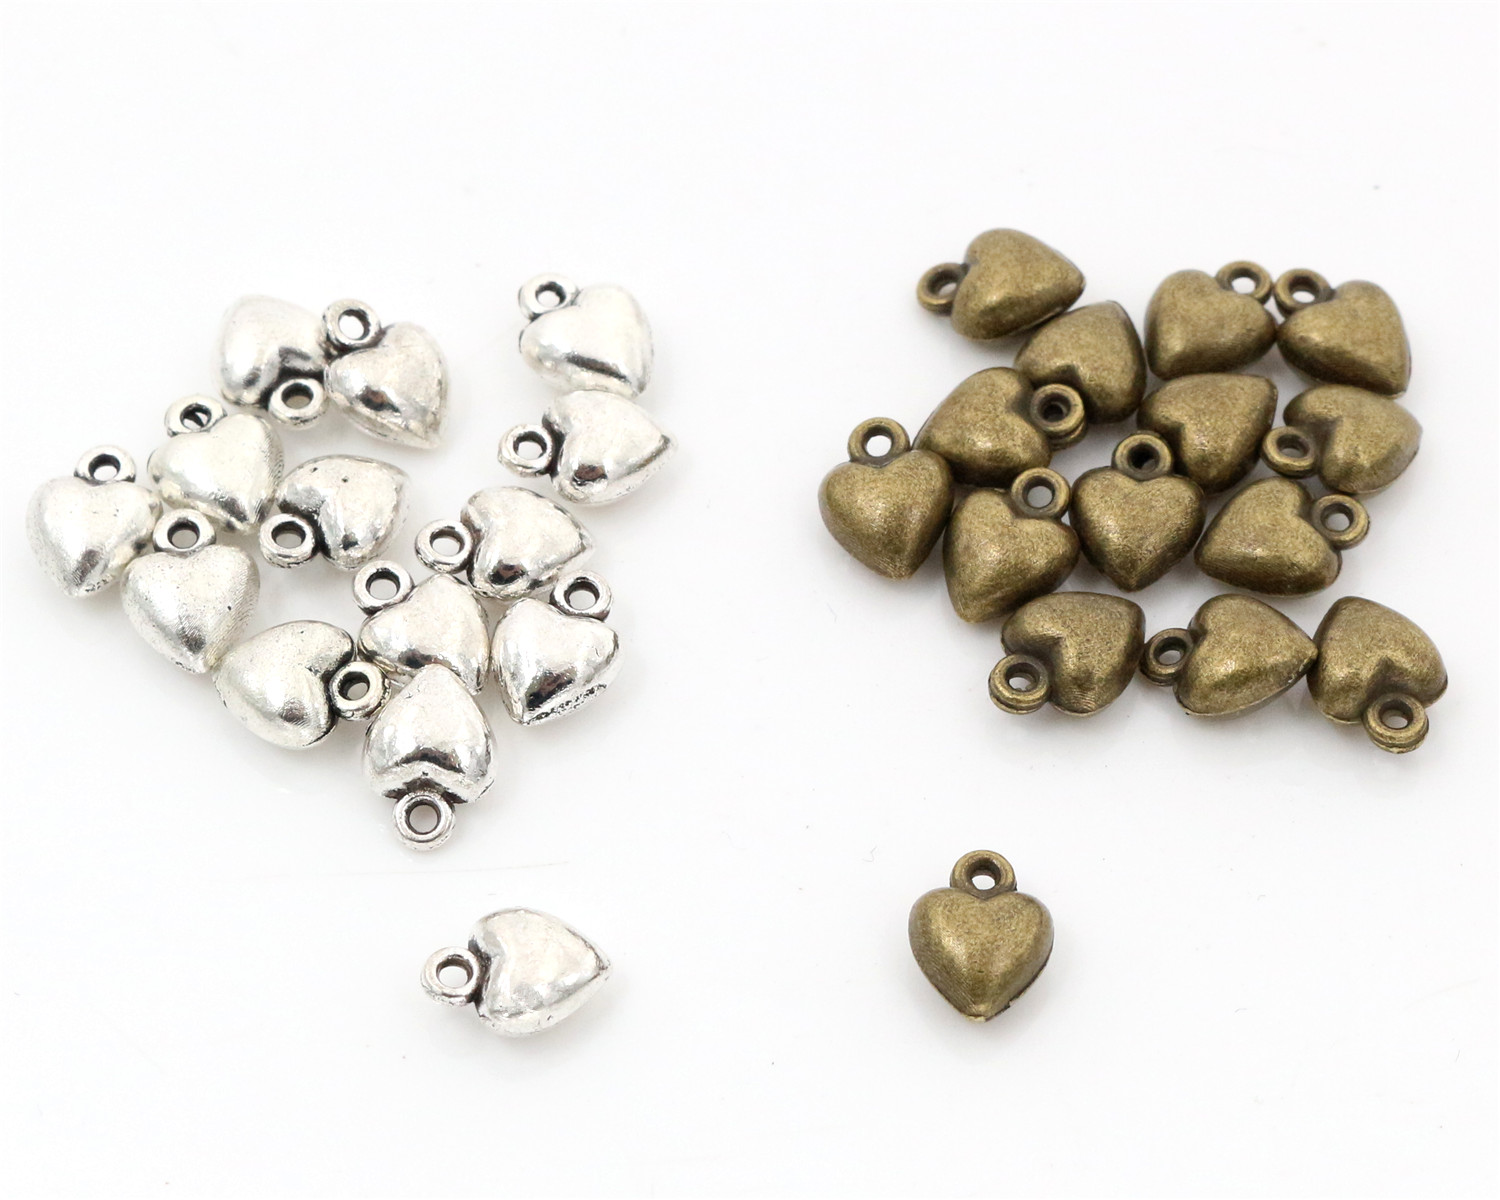 9x7mm 30pcs Antique Silver and Bronze Plated Heart Handmade Charms Pendant:DIY for bracelet necklace-9x7mm 30pcs Antique Silver and Bronze Plated Heart Handmade Charms Pendant:DIY for bracelet necklace-